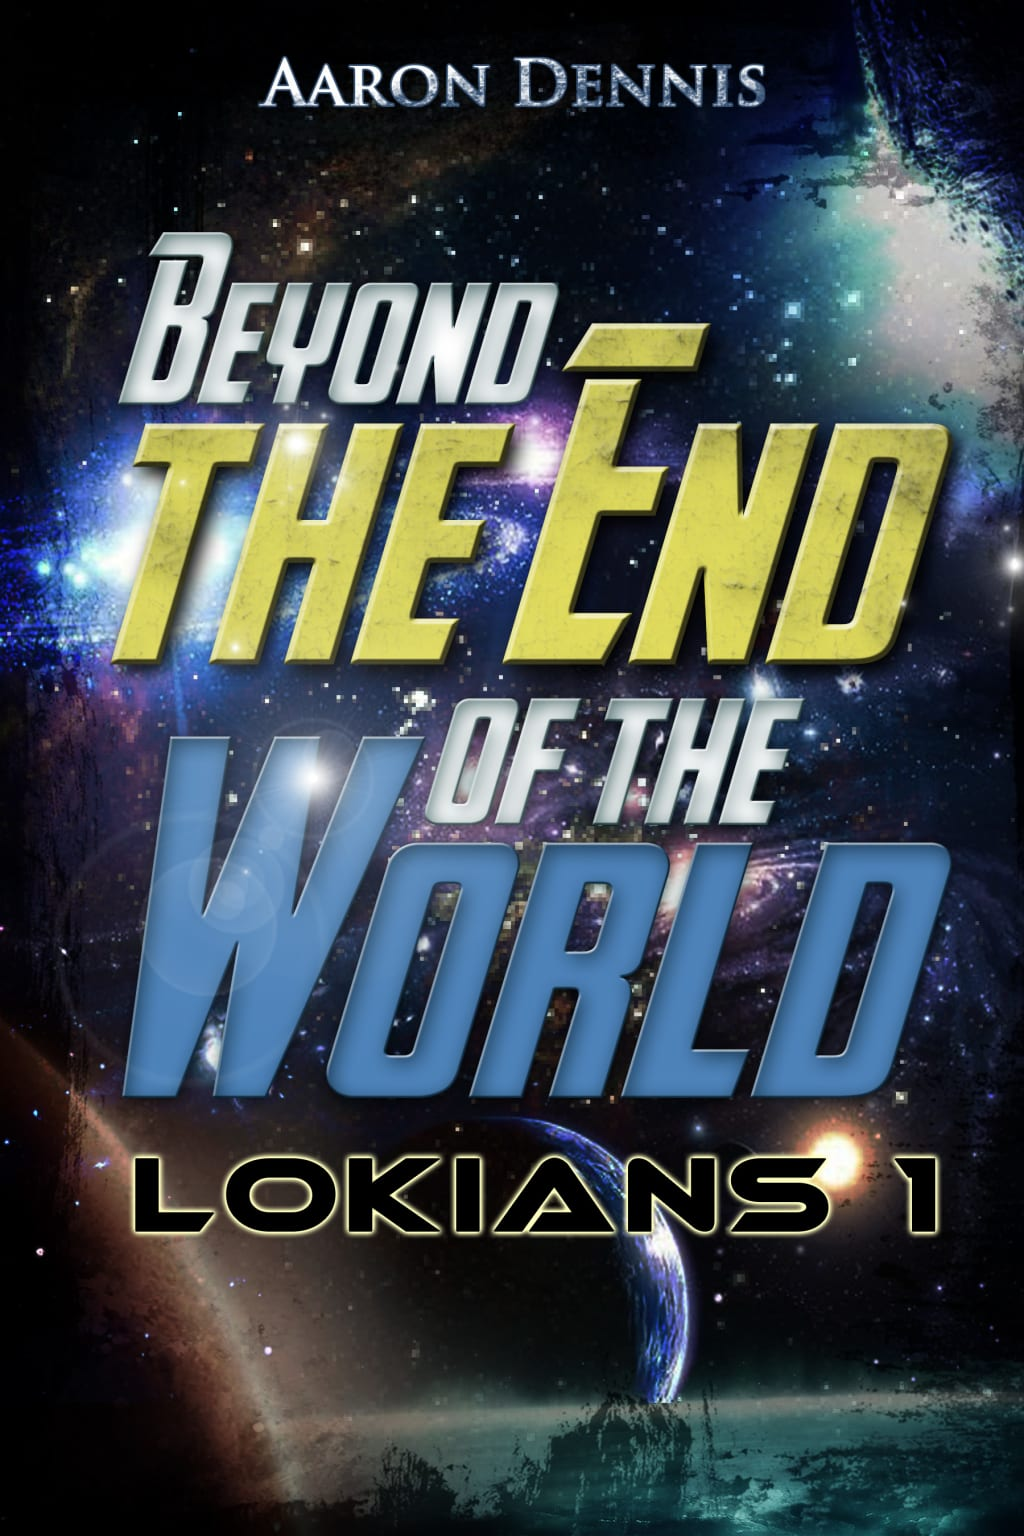 Part 24 of Beyond the End of the World, Lokians 1